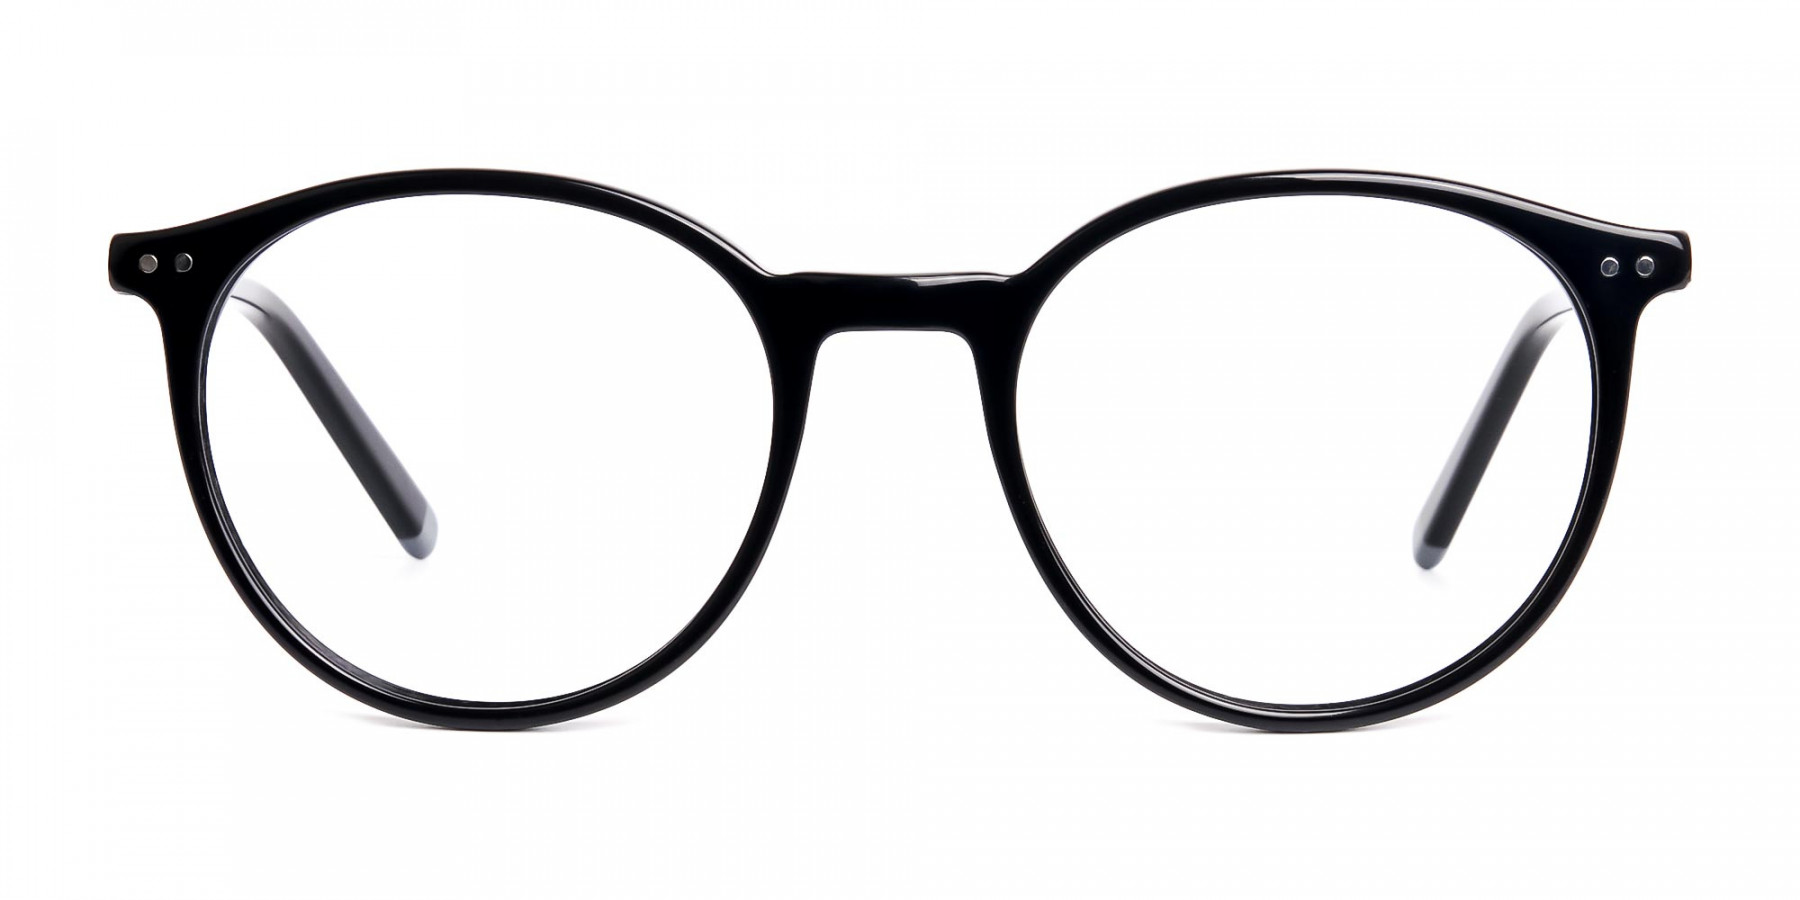 black-and-silver-round-glasses-frames-1